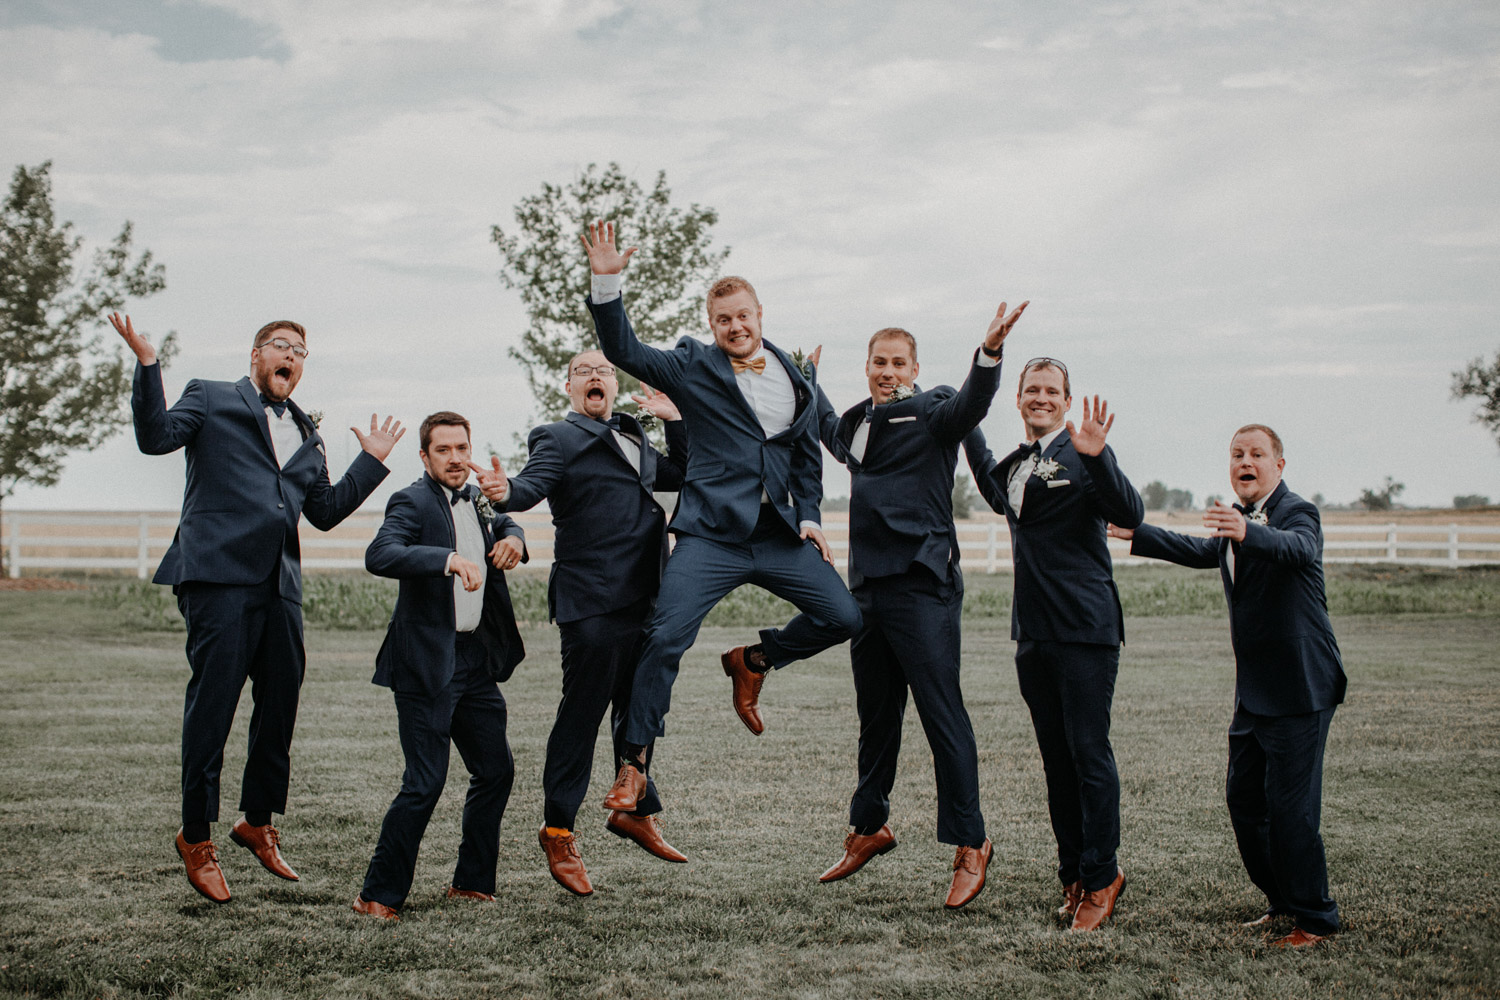 Swiss destination wedding photographer Colorado Denver Vintage Wedding groom groomsmen